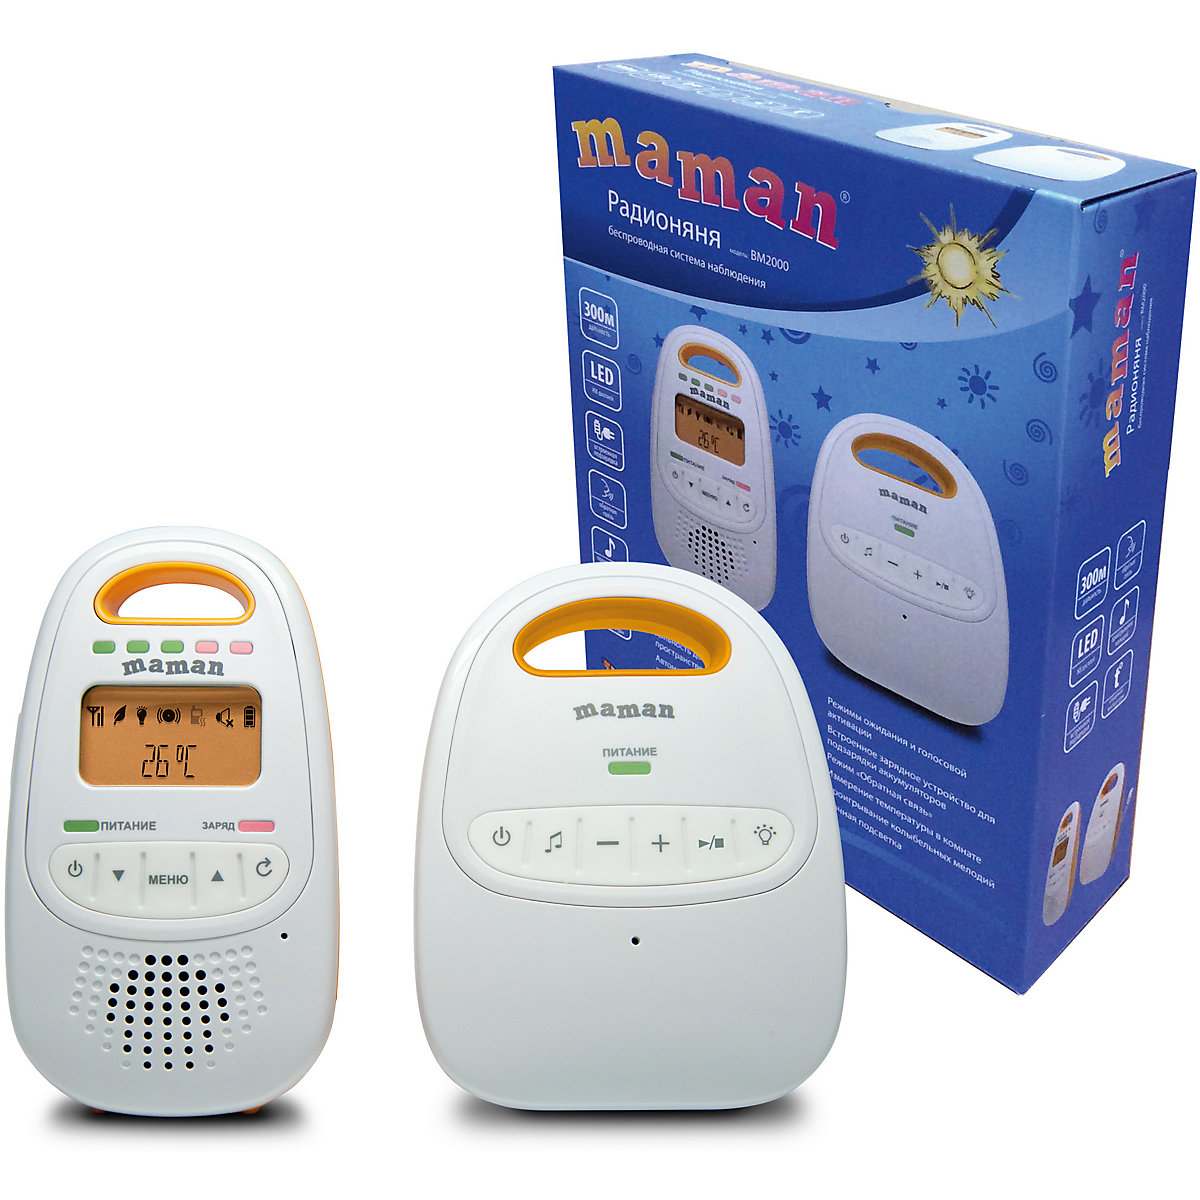 Baby Sleeping Monitors MAMAN 7142168 Safety baby monitor control for children